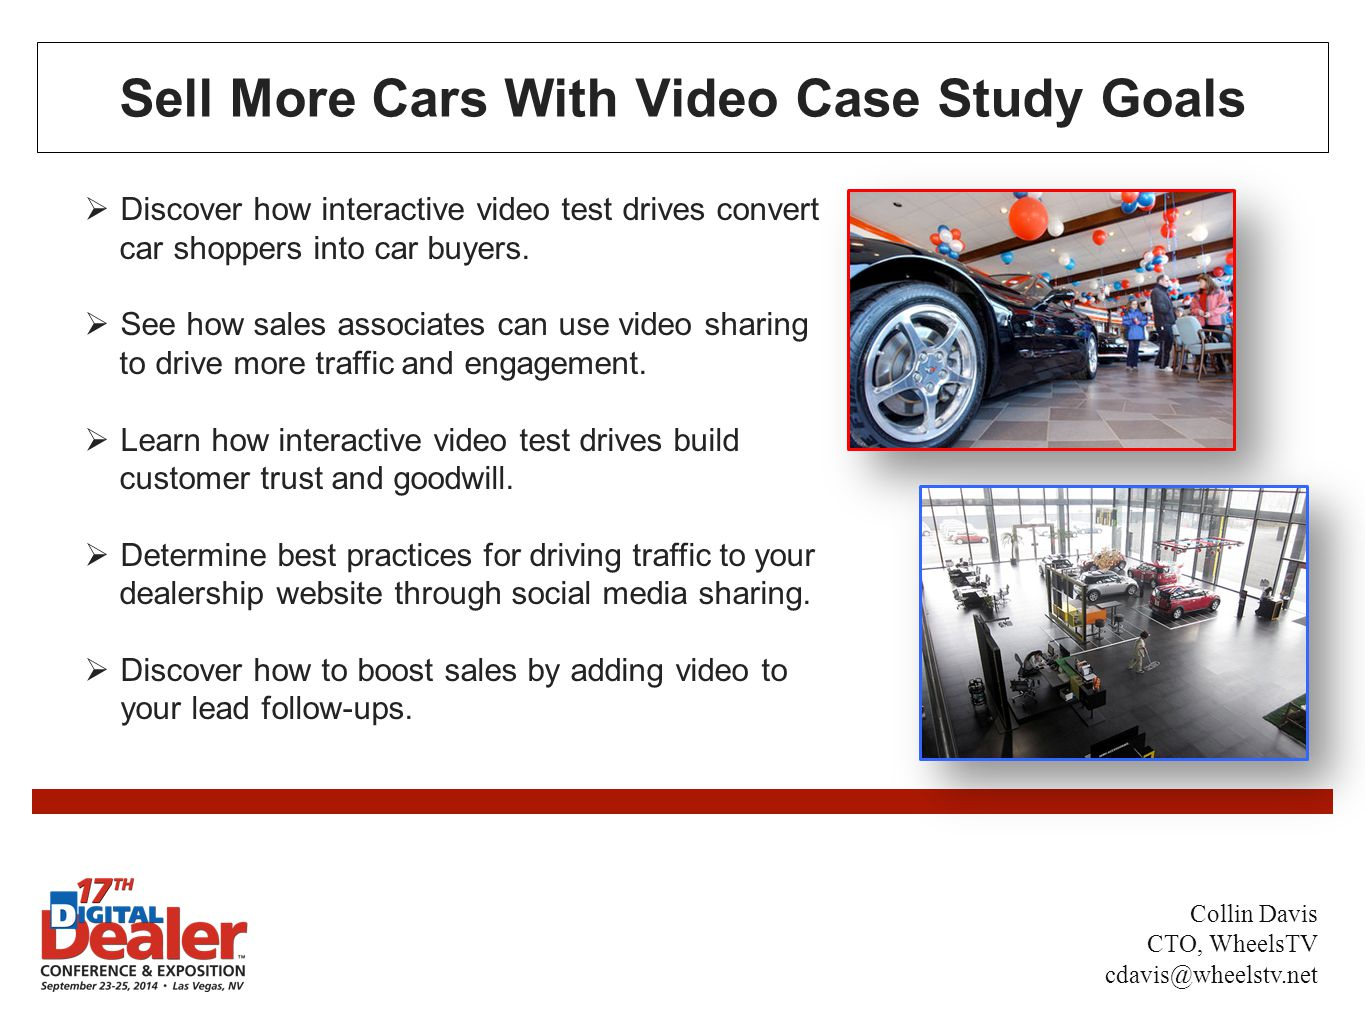 Sell More Cars With Video Case Study Goals Collin Davis CTO, WheelsTV cdavis@wheelstv.net  Discover how interactive video test drives convert car shoppers into car buyers.